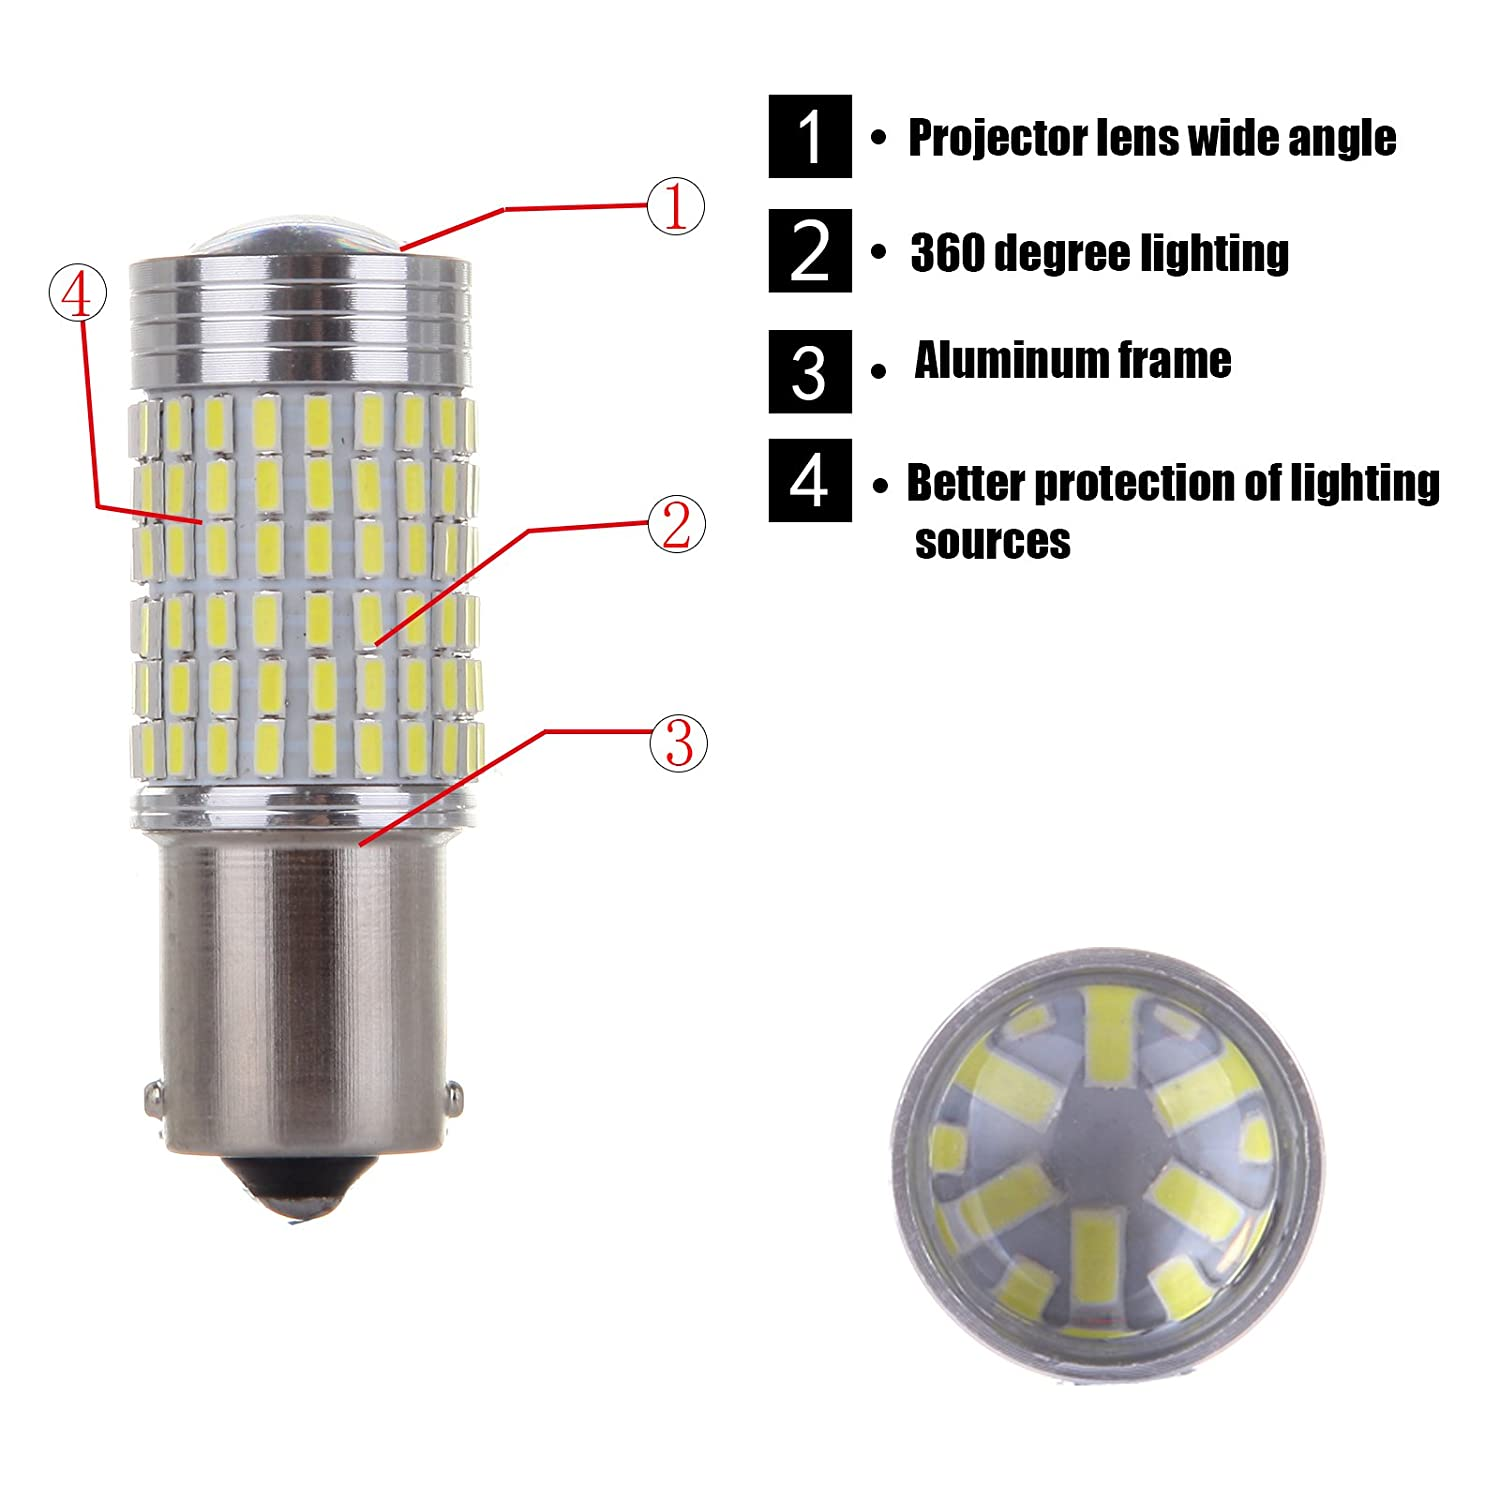 OCPTY T10 LED Light Bulb 194 168 W5W Extremely Bright LED Bulb Replacement fit for Backup Light Car Interior Dome License Plate Door Lights T10 6000K White